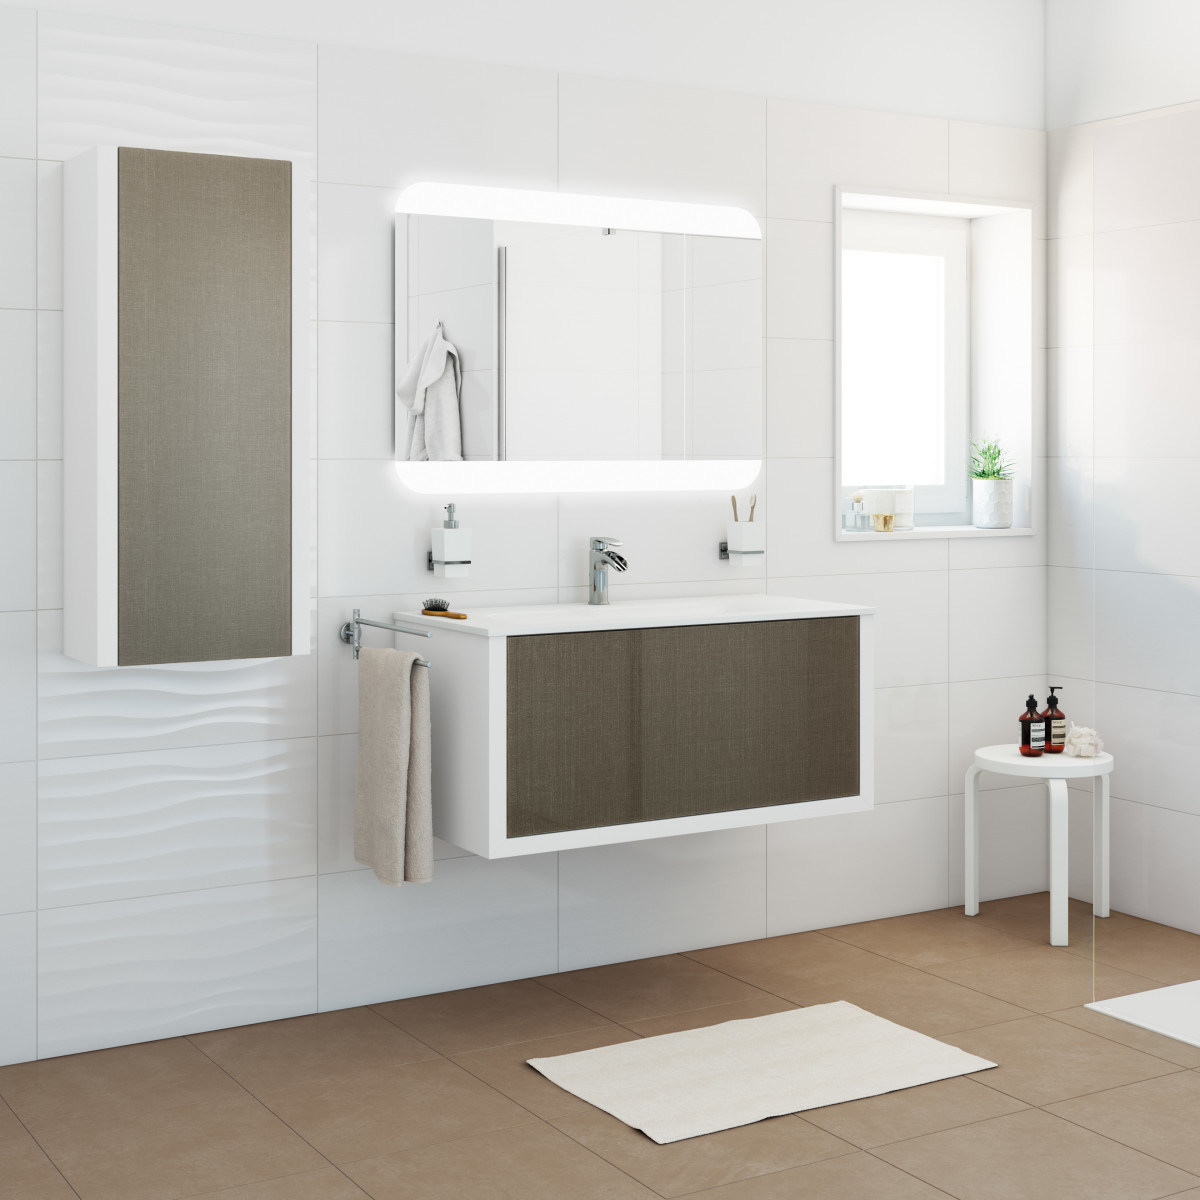 Mobile bagno classico leroy merlin